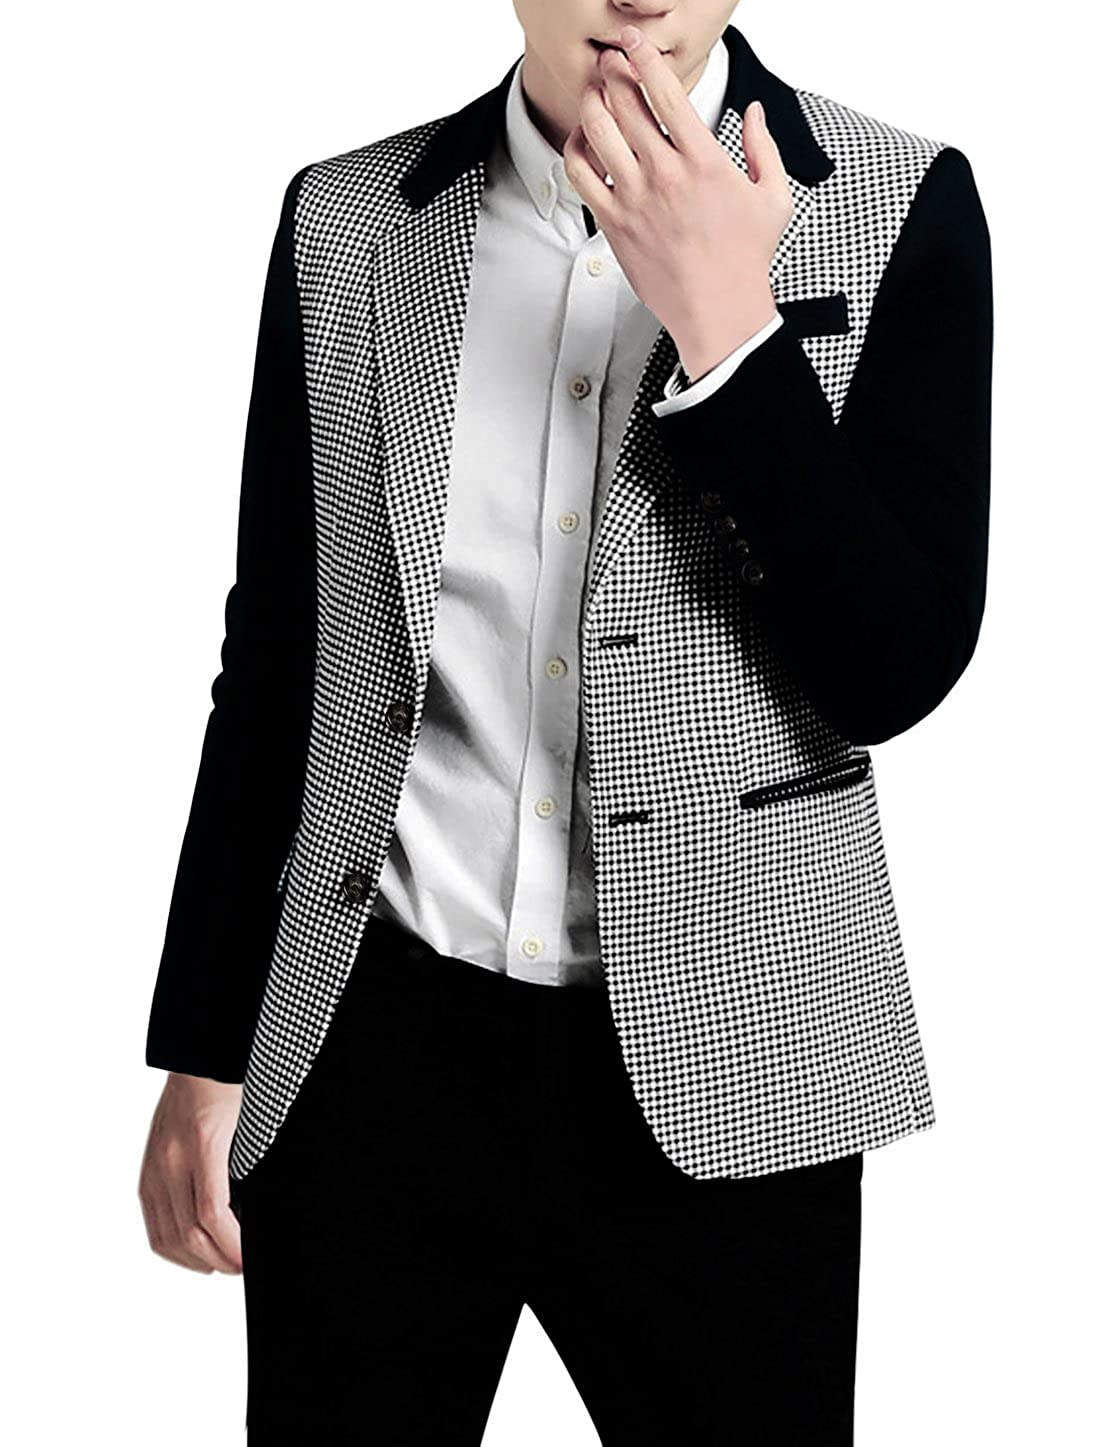 Retro Clothing for Men | Vintage Men's Fashion uxcell Men Houndstooth Long Sleeve Padded Shoulder Single Breasted Blazer $30.93 AT vintagedancer.com